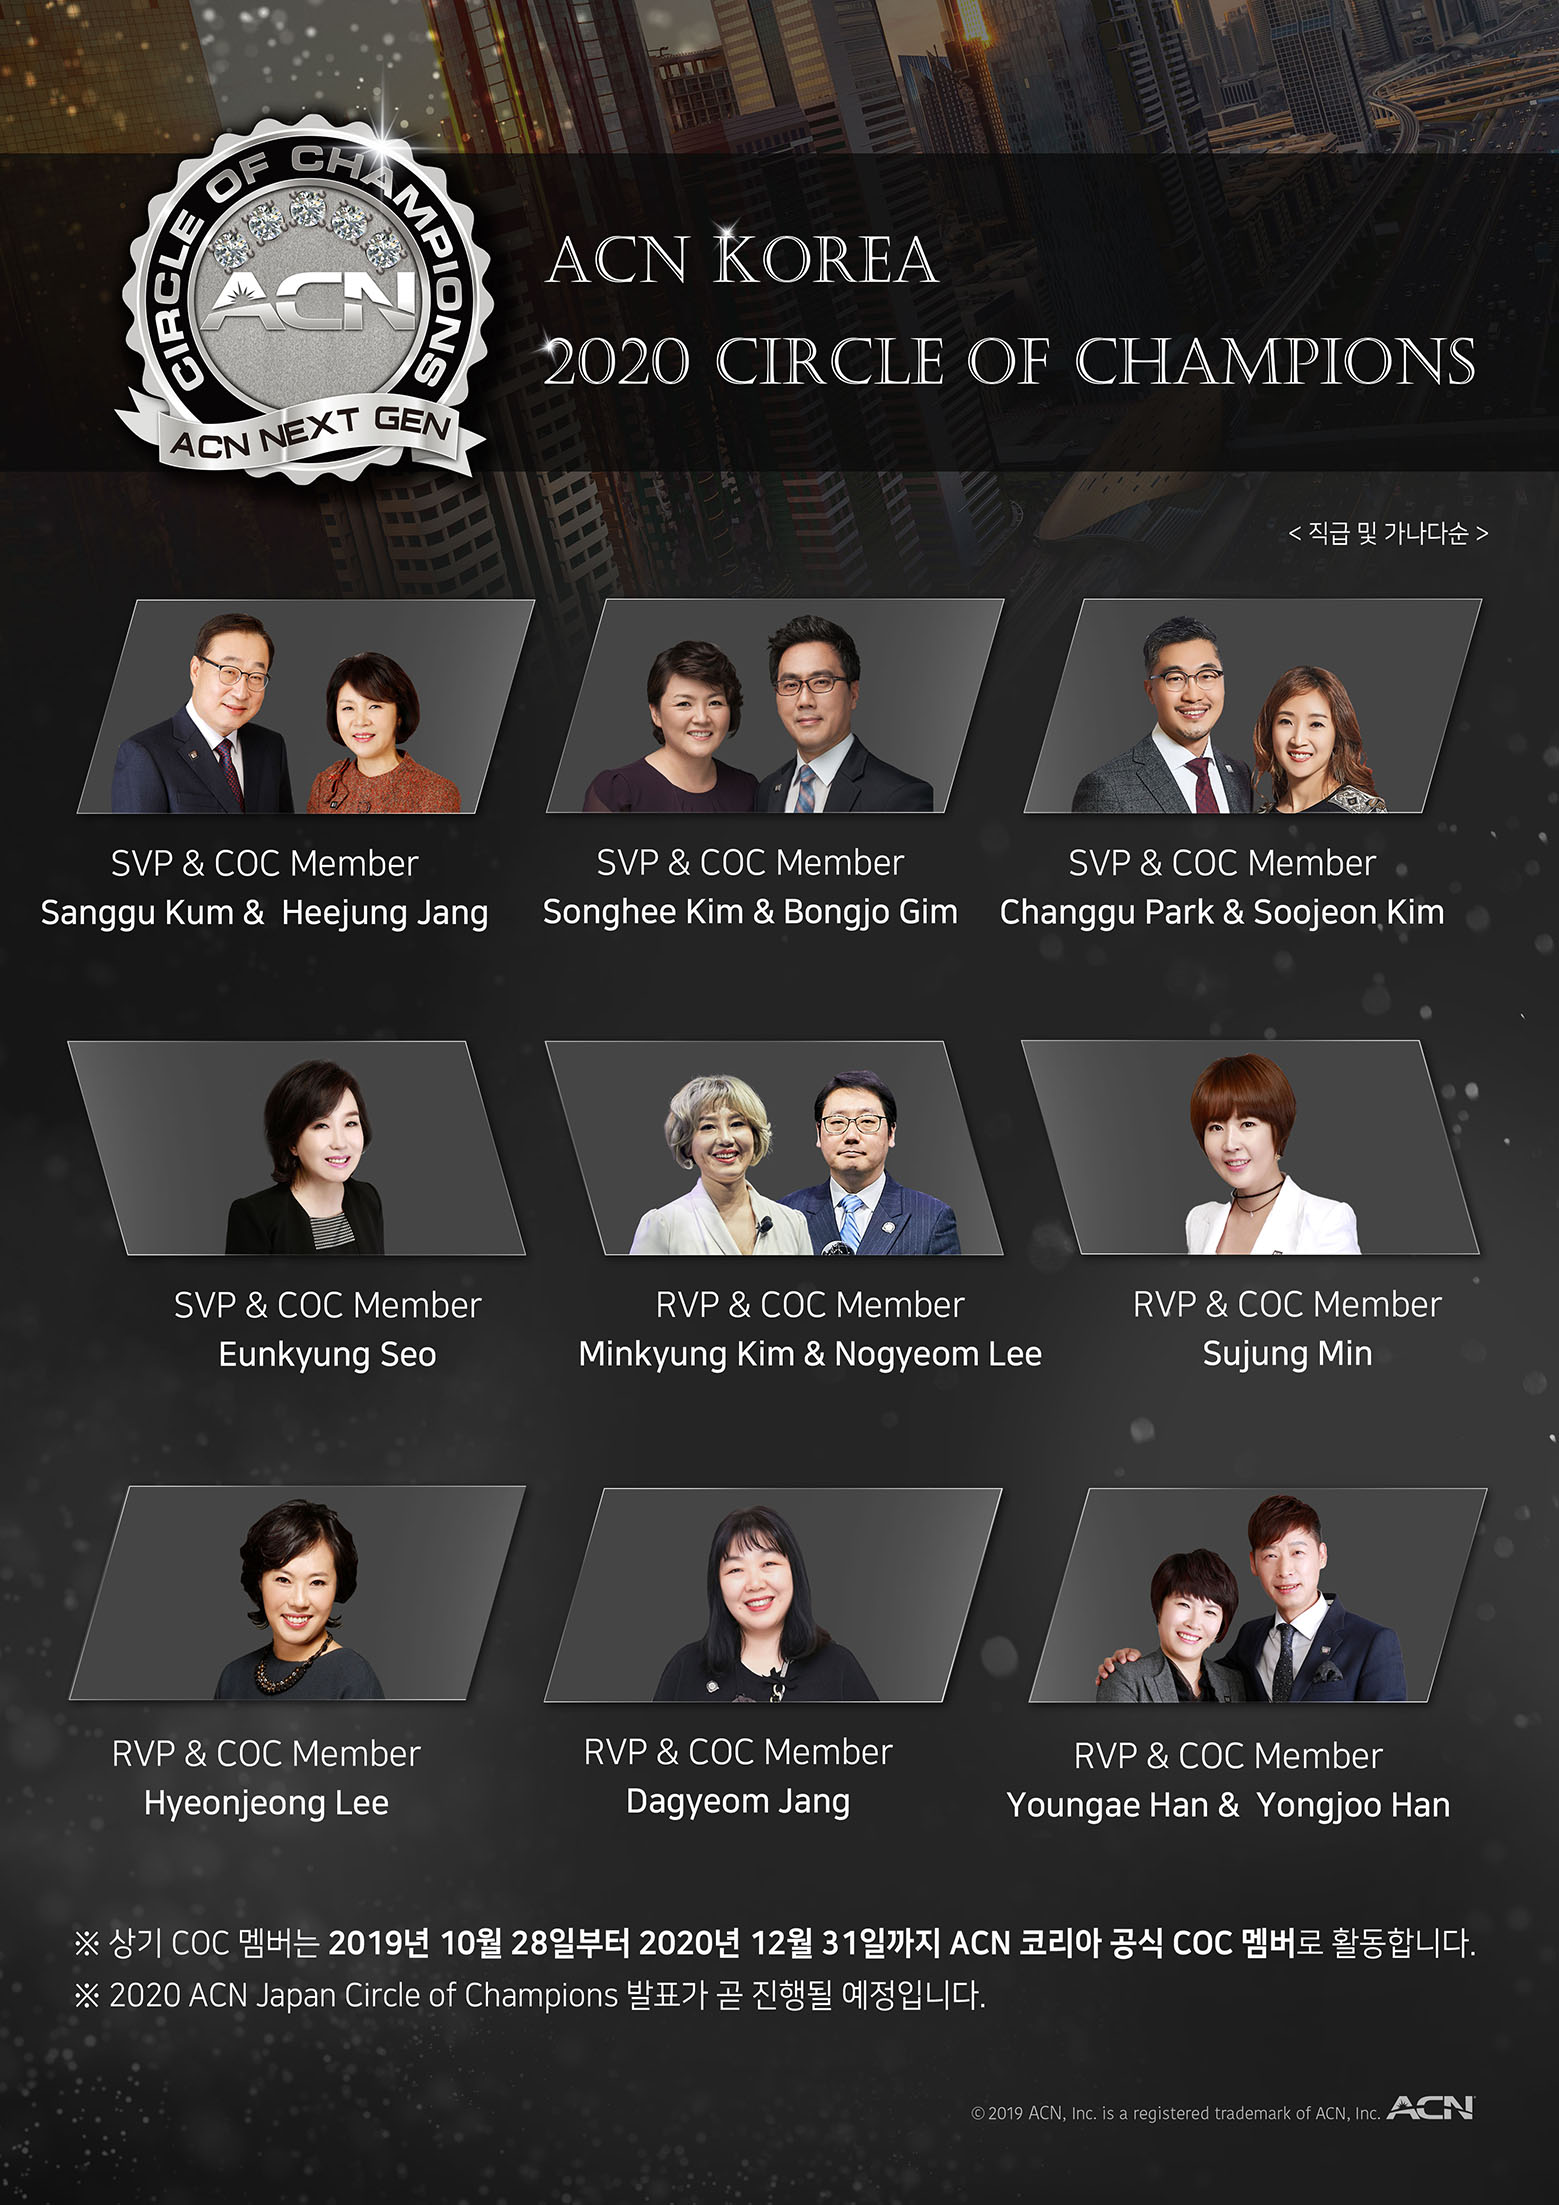 ACN KOREA 2020 Circle of Champions